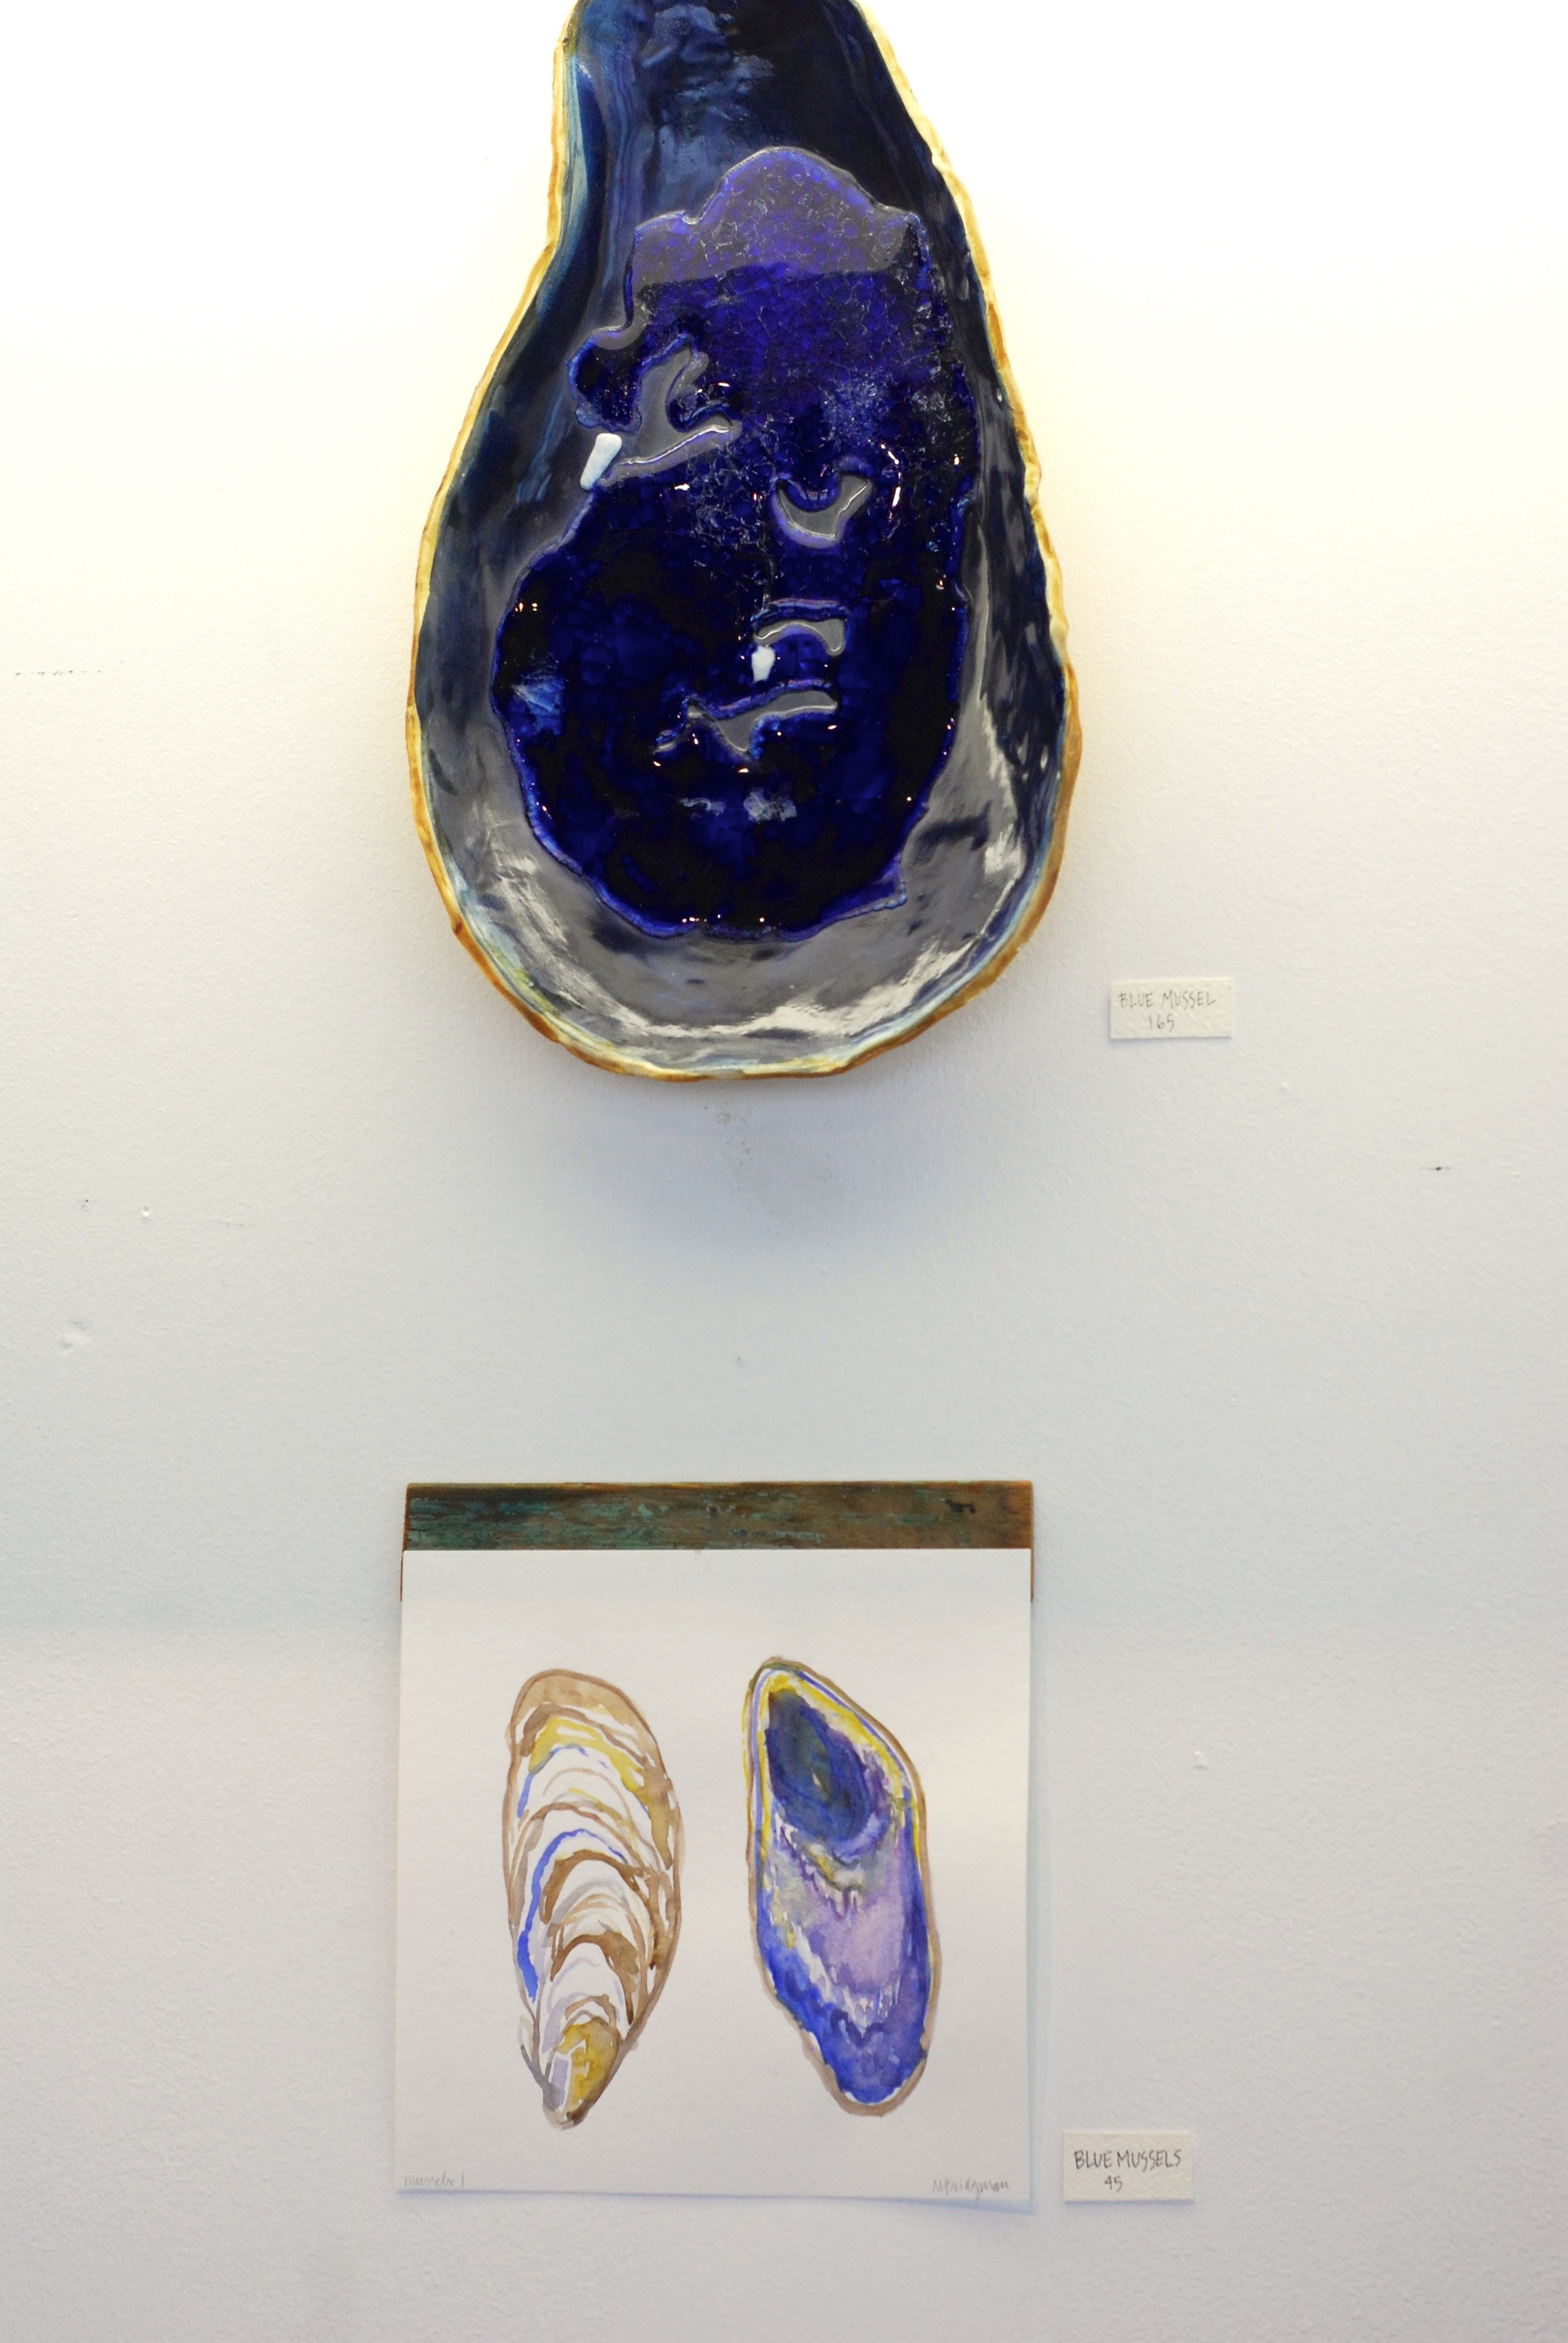 These big blue mussel platters (there are two) were some of my favorite pieces in this show.